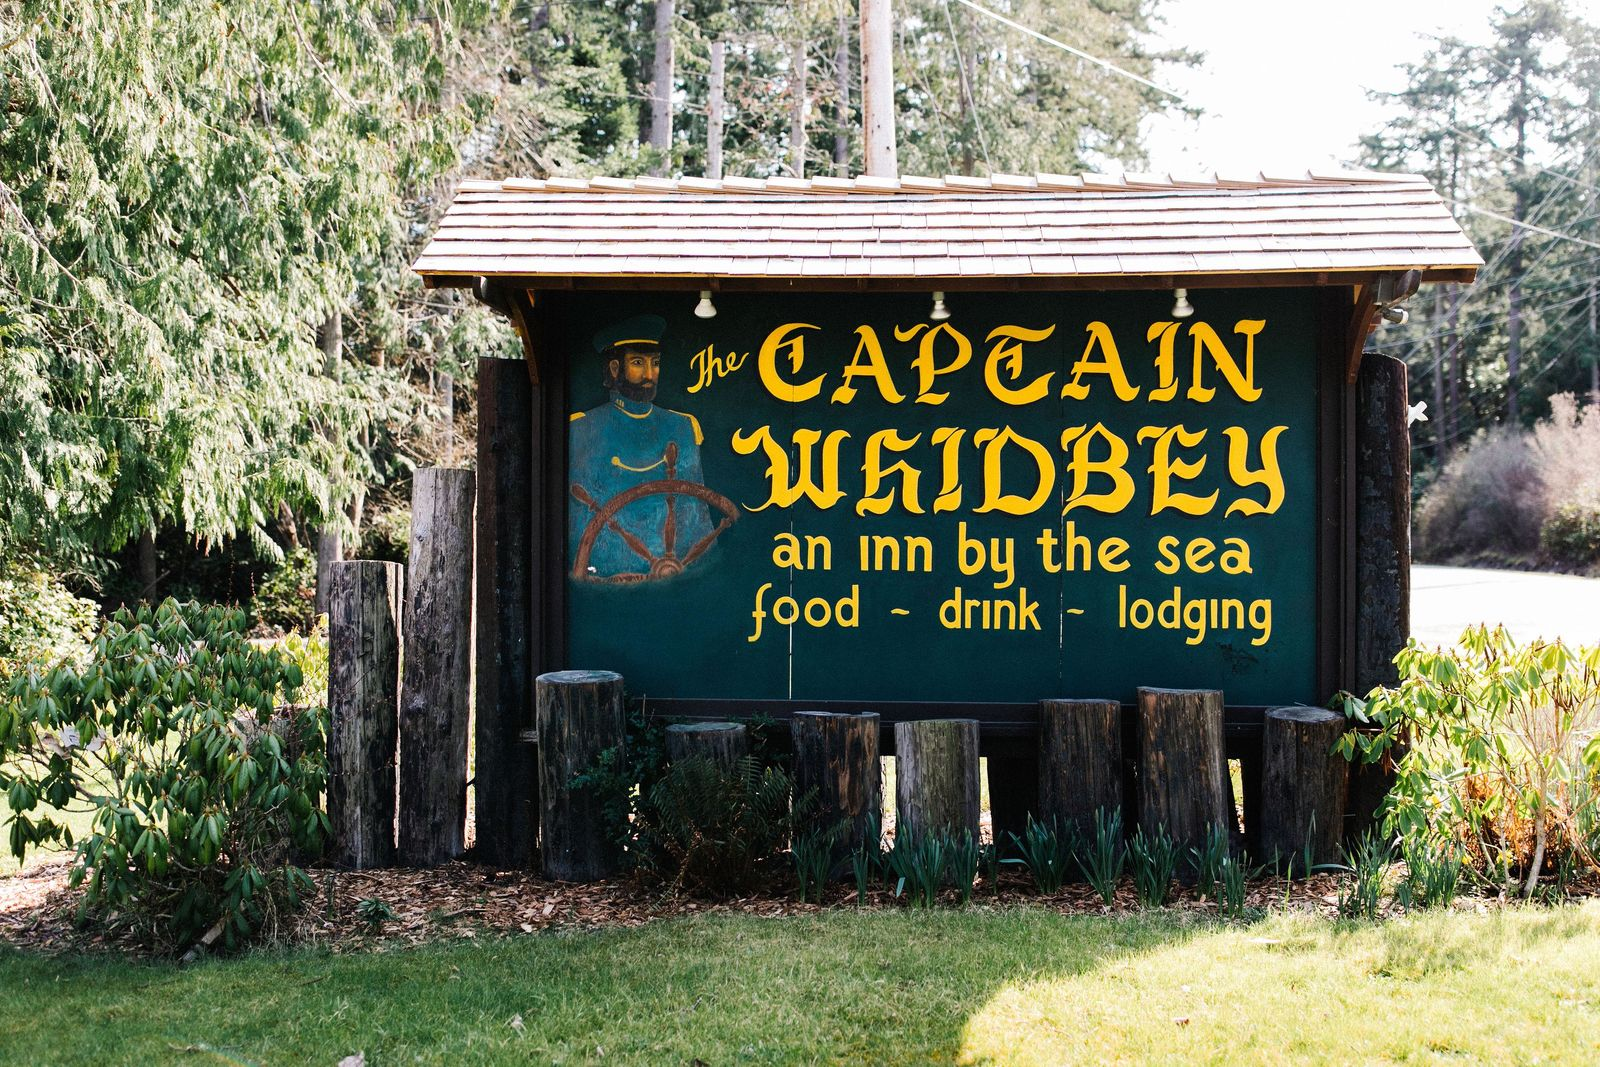 (Image courtesy of Captain Whidbey Inn).